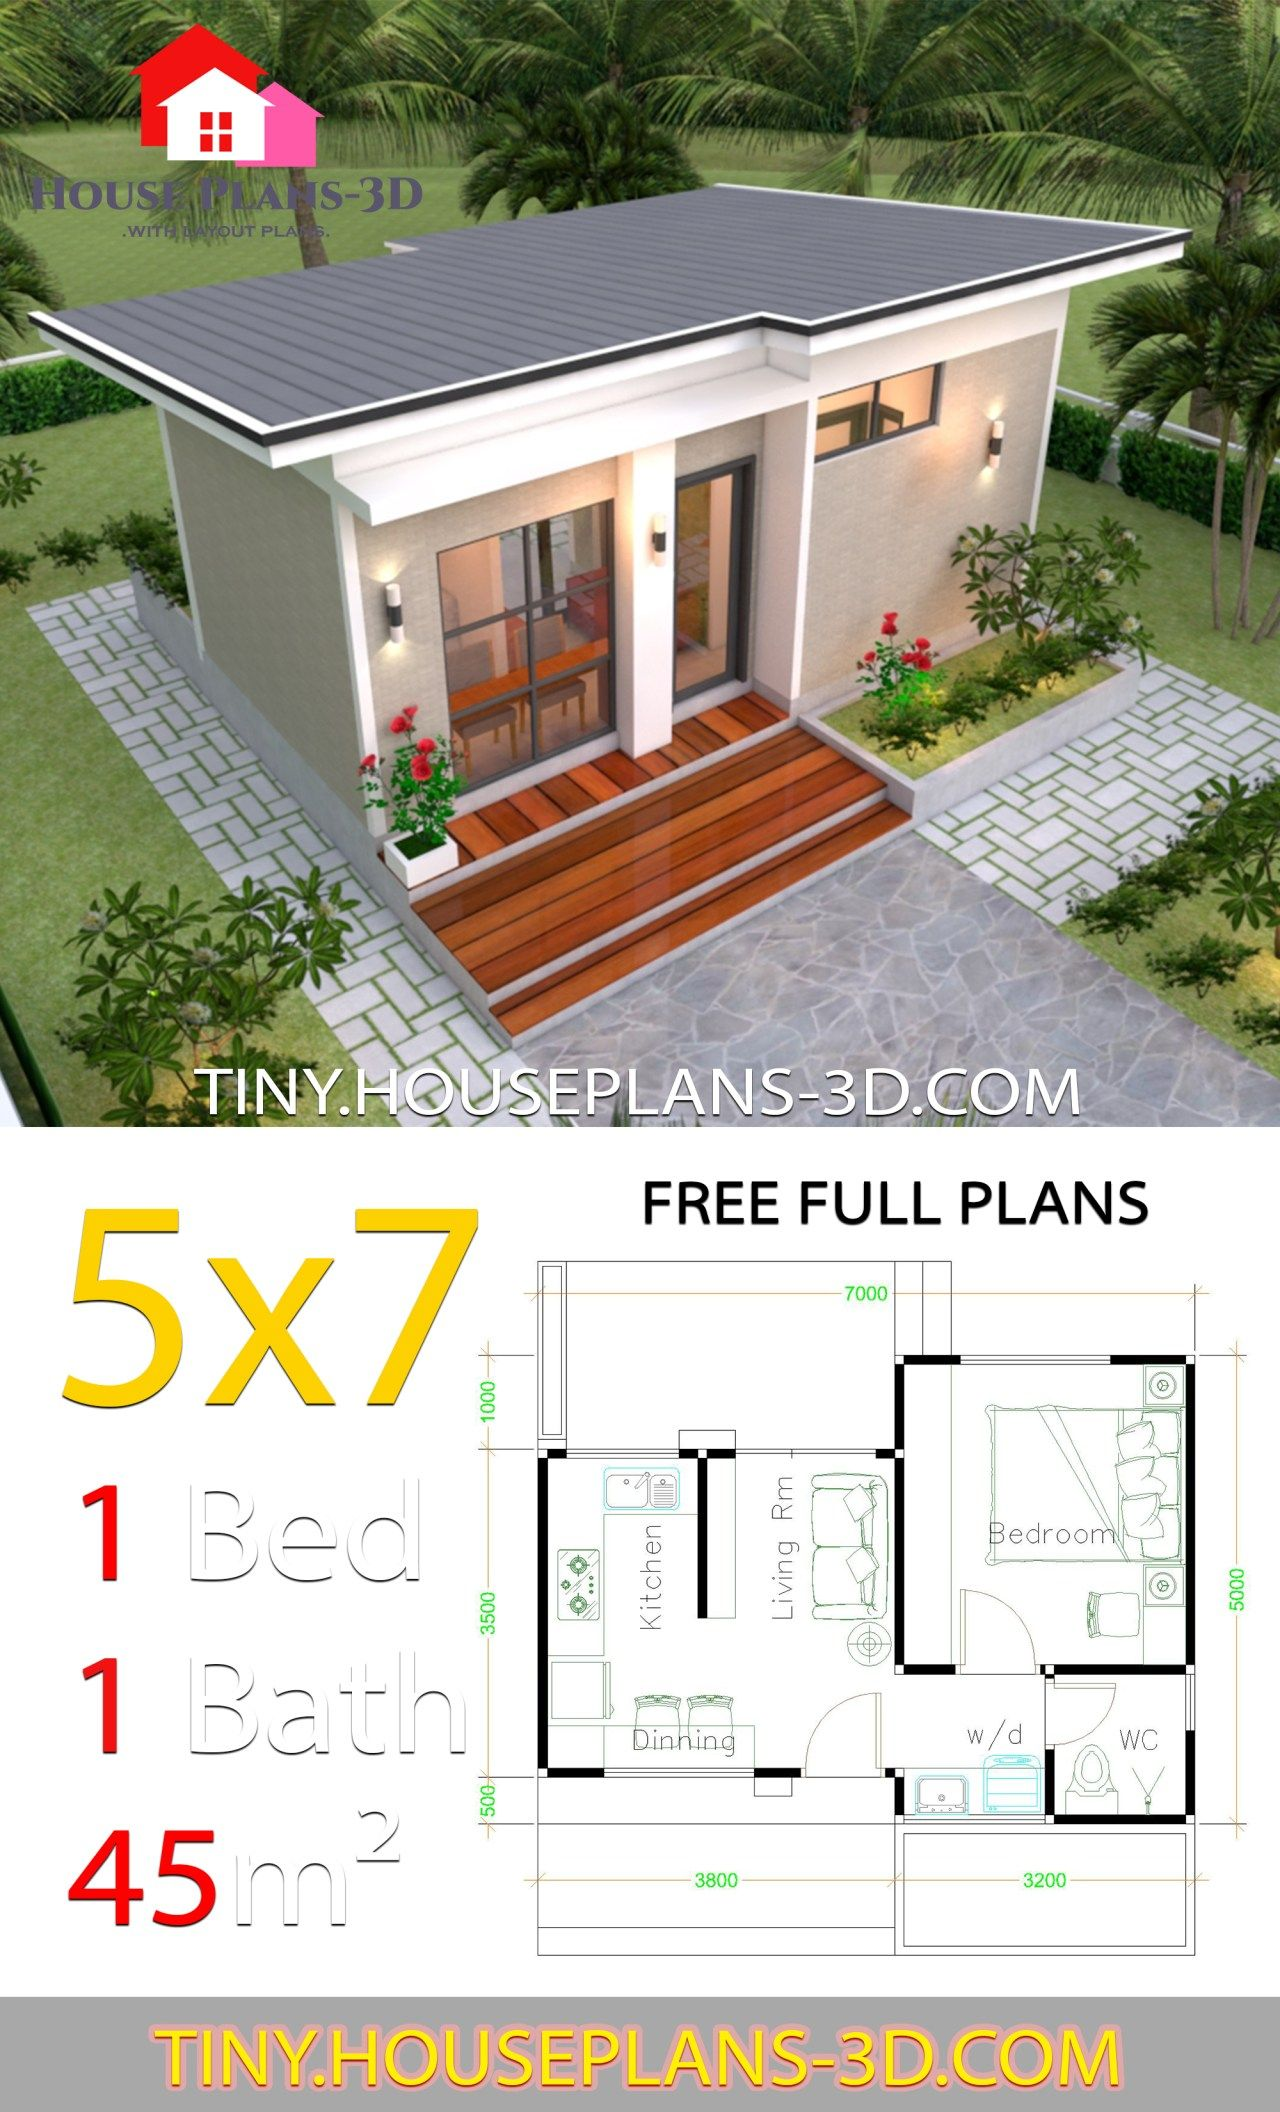 Small House Design Plans 5x7 With One Bedroom Shed Roof Tiny House Plans Small House Layout Small House Design Plans Simple House Design